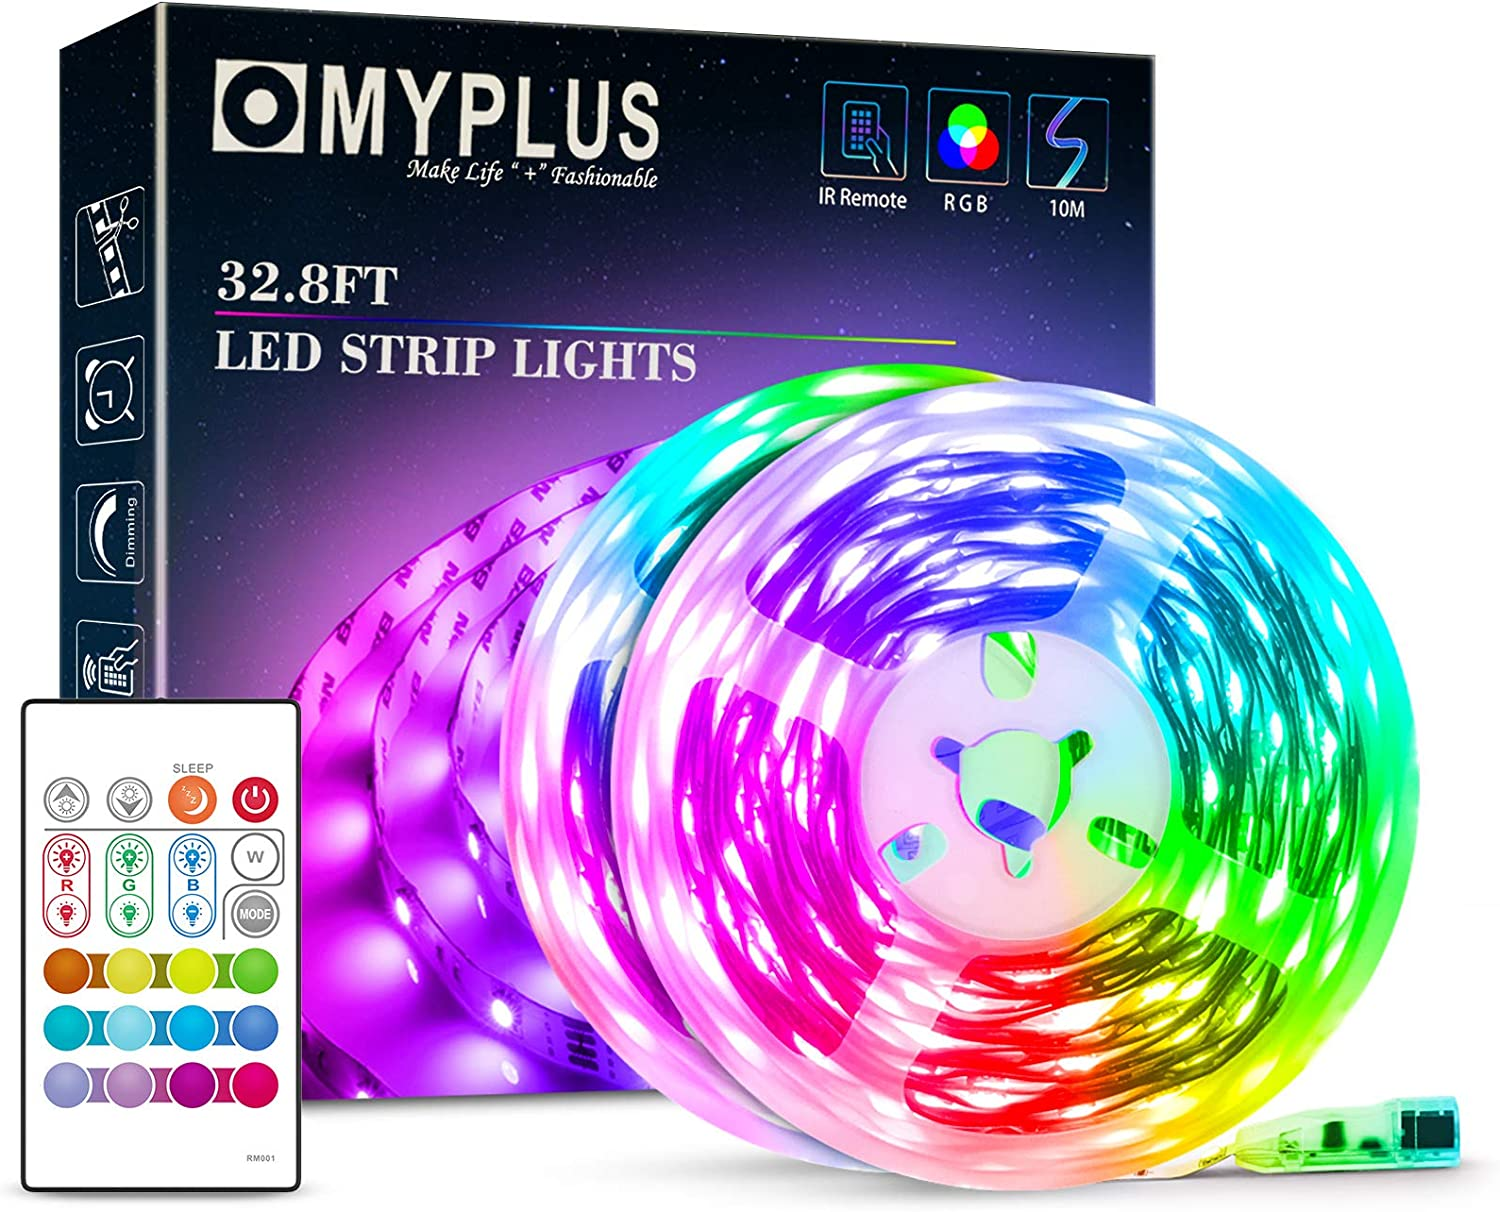 Amazon Com 32 8ft Led Strip Lights Myplus Rgb Led Light Strip With Remote Color Change Diy Tape Lights 300 Pcs Smd 5050 Rgb For Bedroom Tv Home Festival Party Home Improvement There are so many pretty light ideas on pinterest and i have posted several ideas on this blog too, but one of the things that has been missing is a truly step by step guide. 32 8ft led strip lights myplus rgb led light strip with remote color change diy tape lights 300 pcs smd 5050 rgb for bedroom tv home festival party